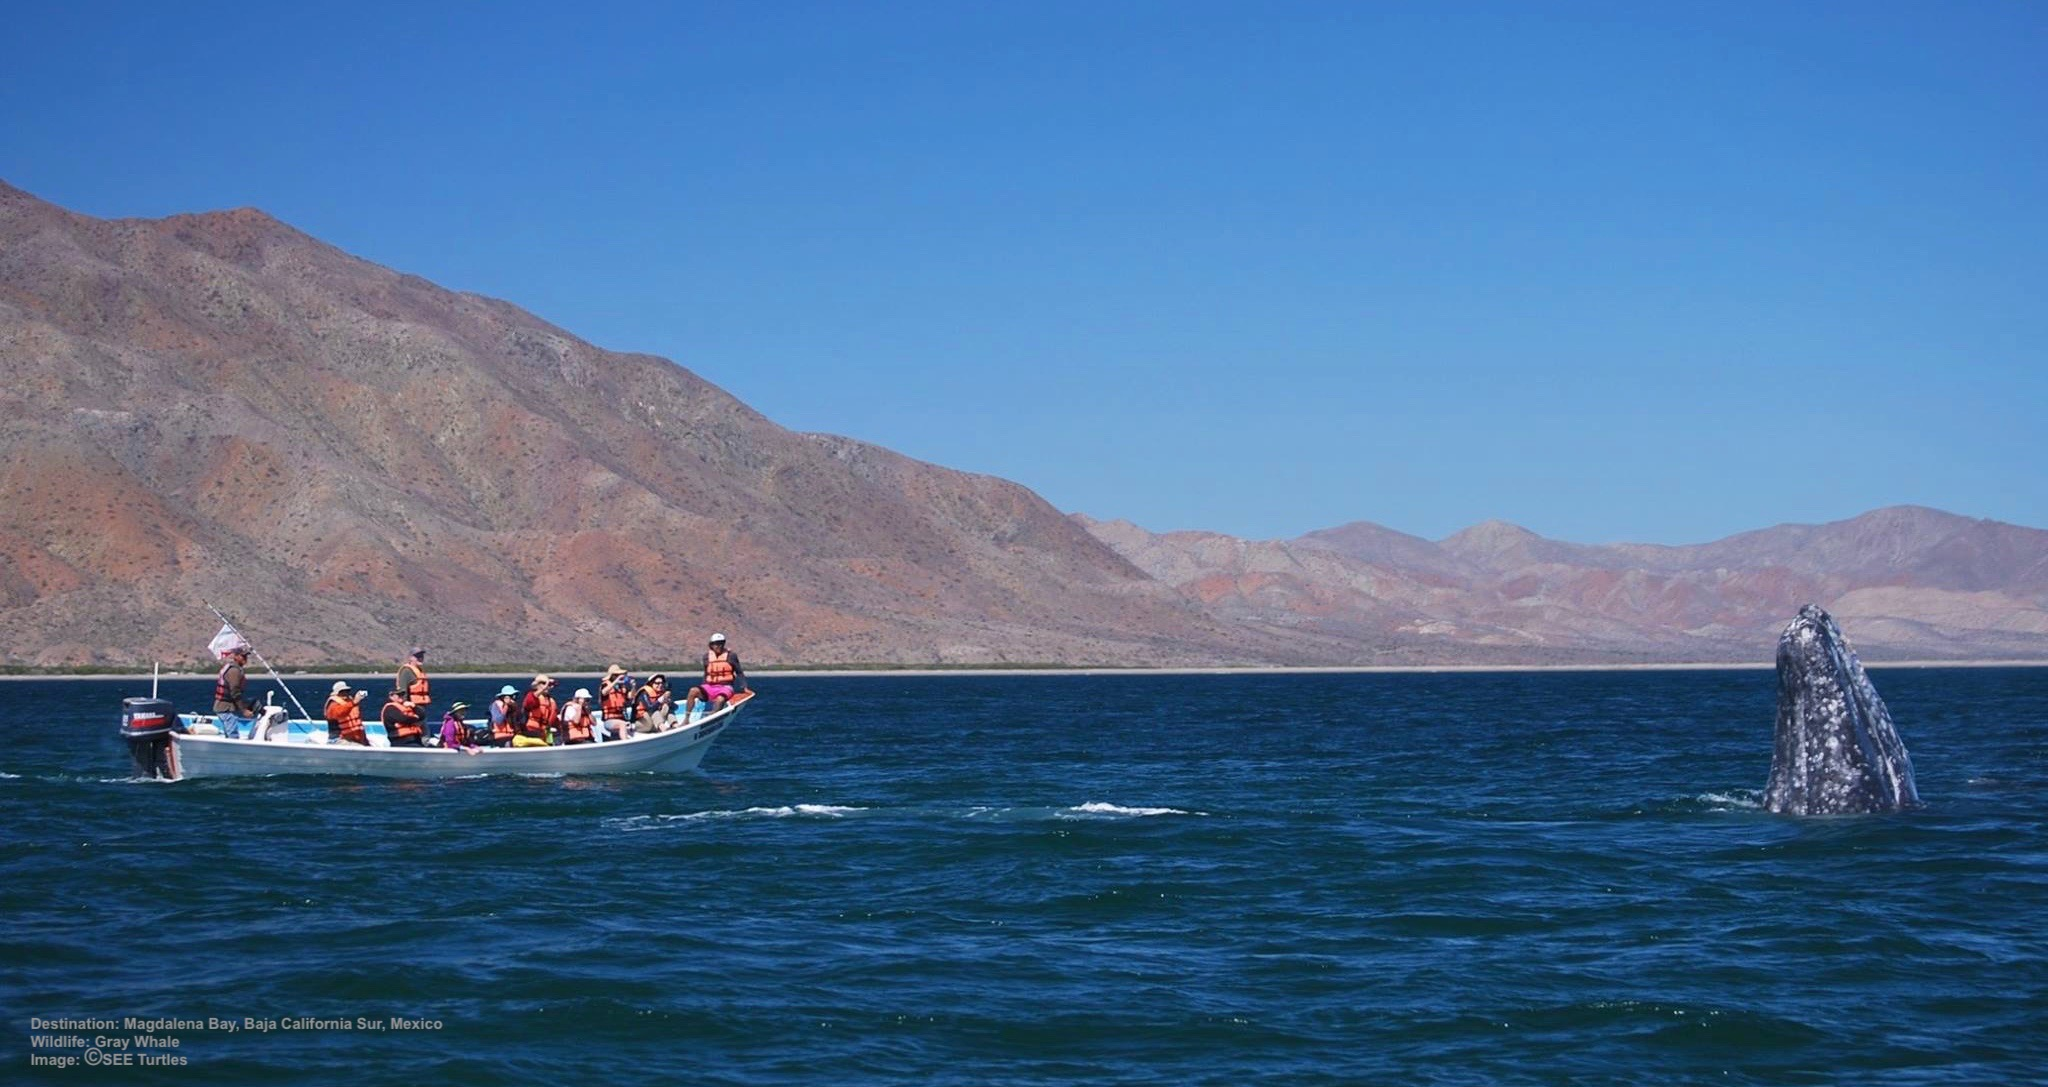 VOLUNTEERING WITH SEE TURTLES IS NOT ALL WORK! ON MAGADENA BAY AT BAJA CALIFORNIA SUR, MEXICO, PARTICIPANTS ALSO GO GRAY WHALES WATCHING, SWIMMING WITH WHALE SHARKS AND MORE. IMAGE: THANKS TO  RED Travel  & SEE TURTLES.